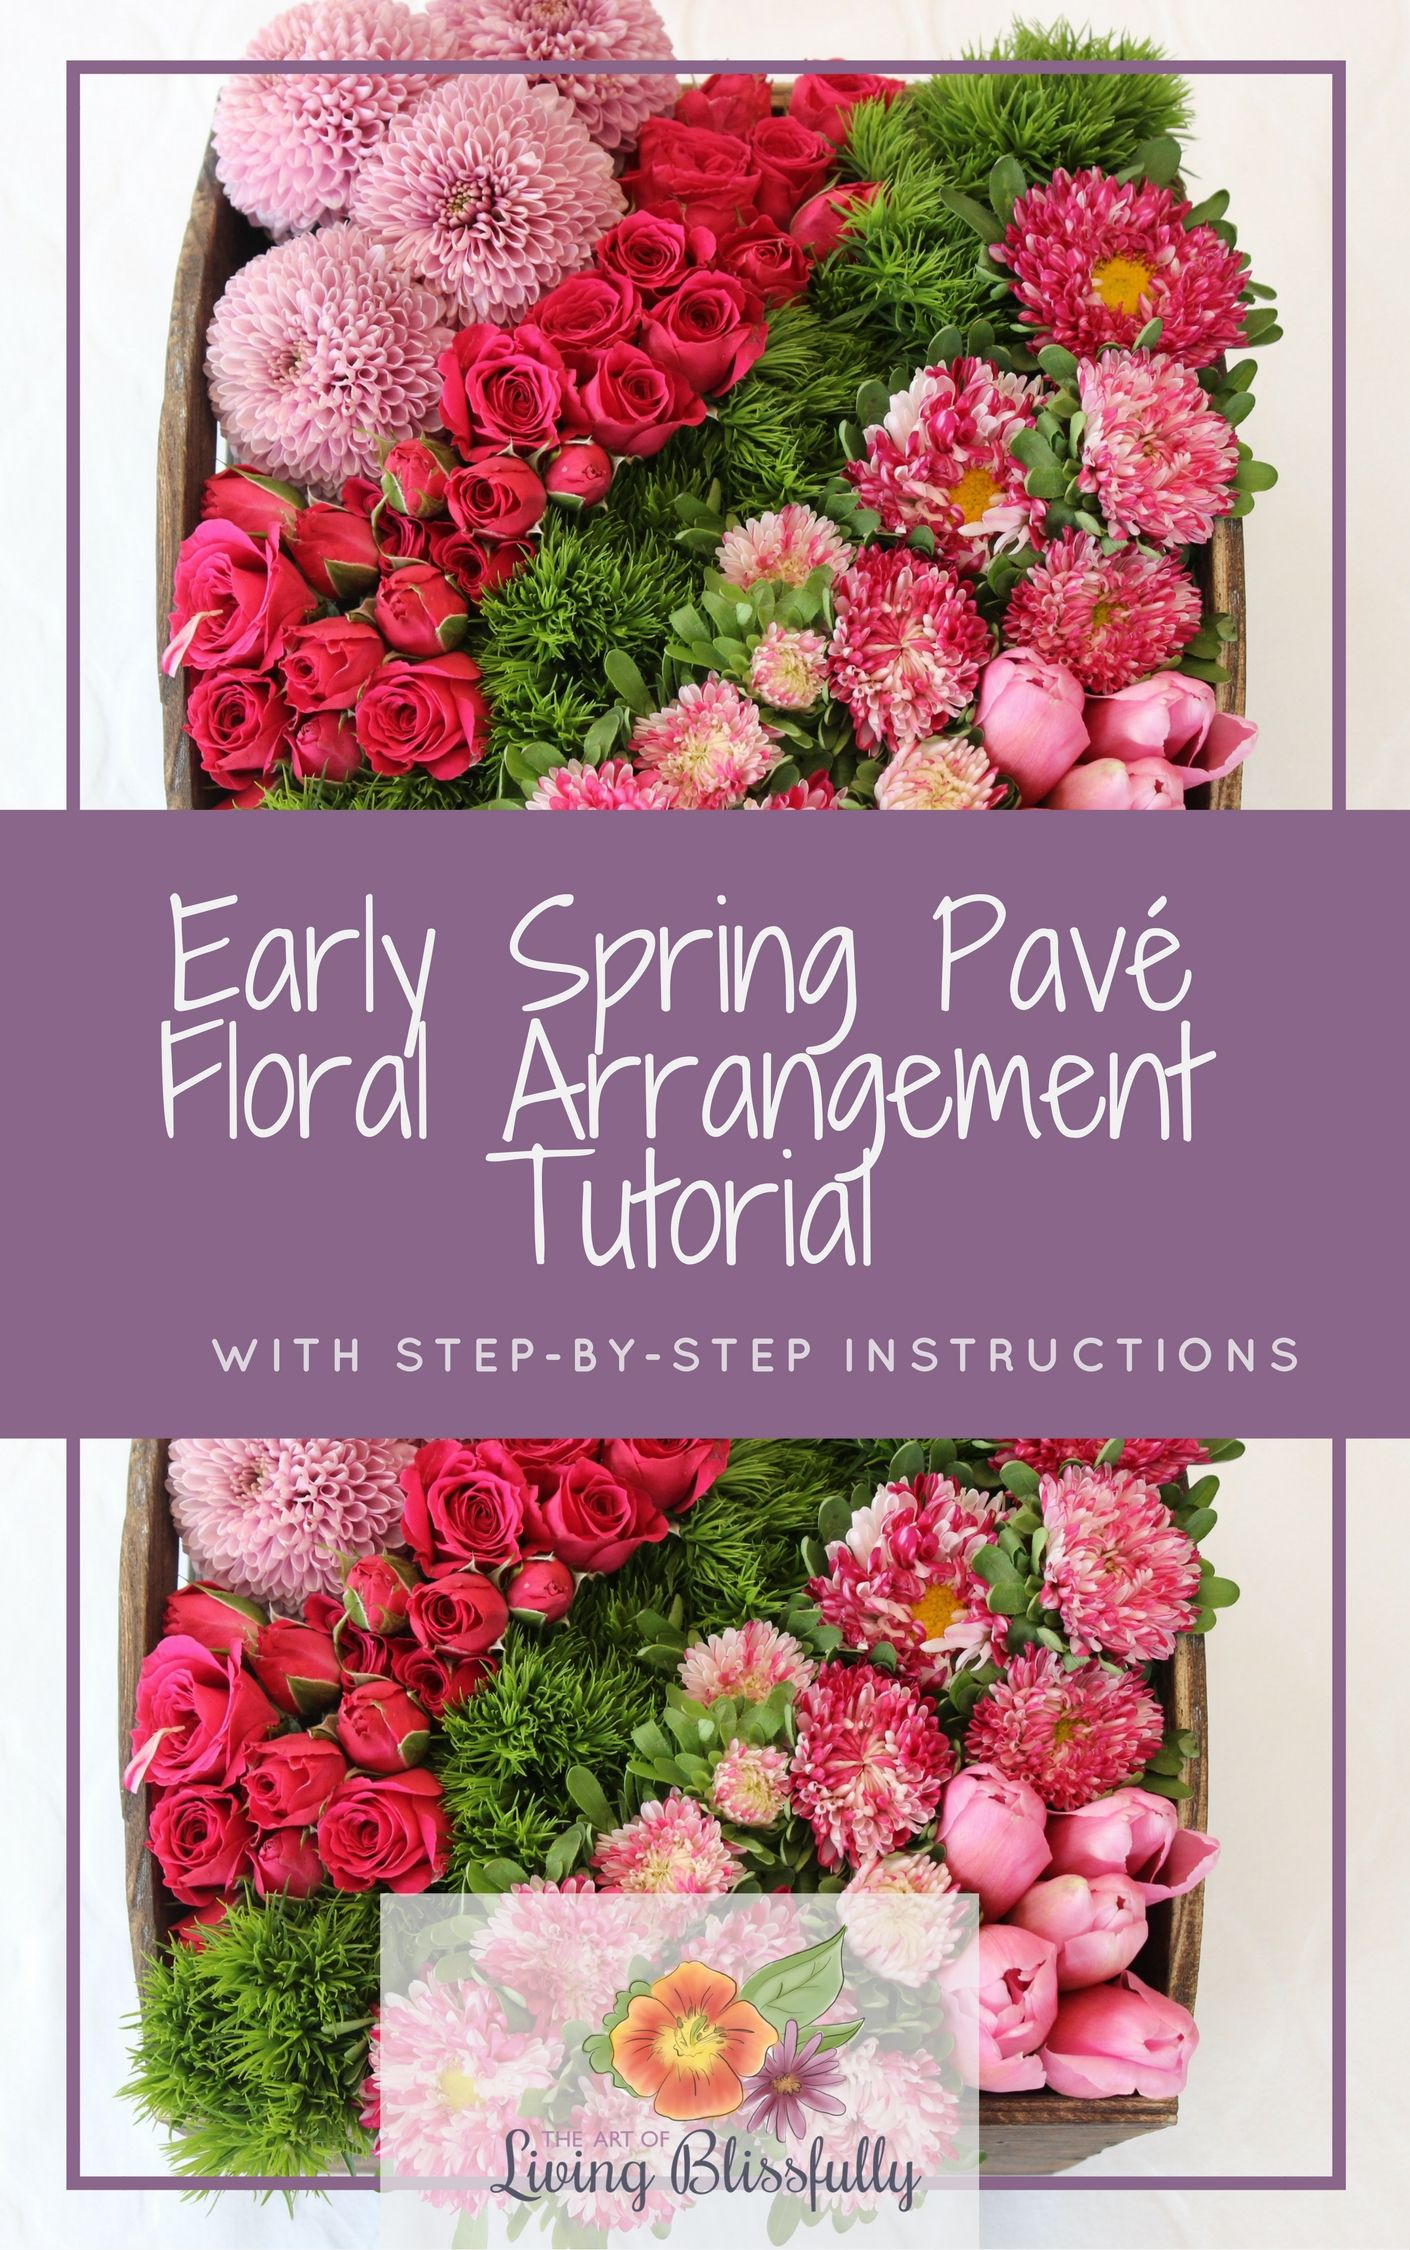 Diy Floral Arrangement Tutorial With Step By Step Instructions